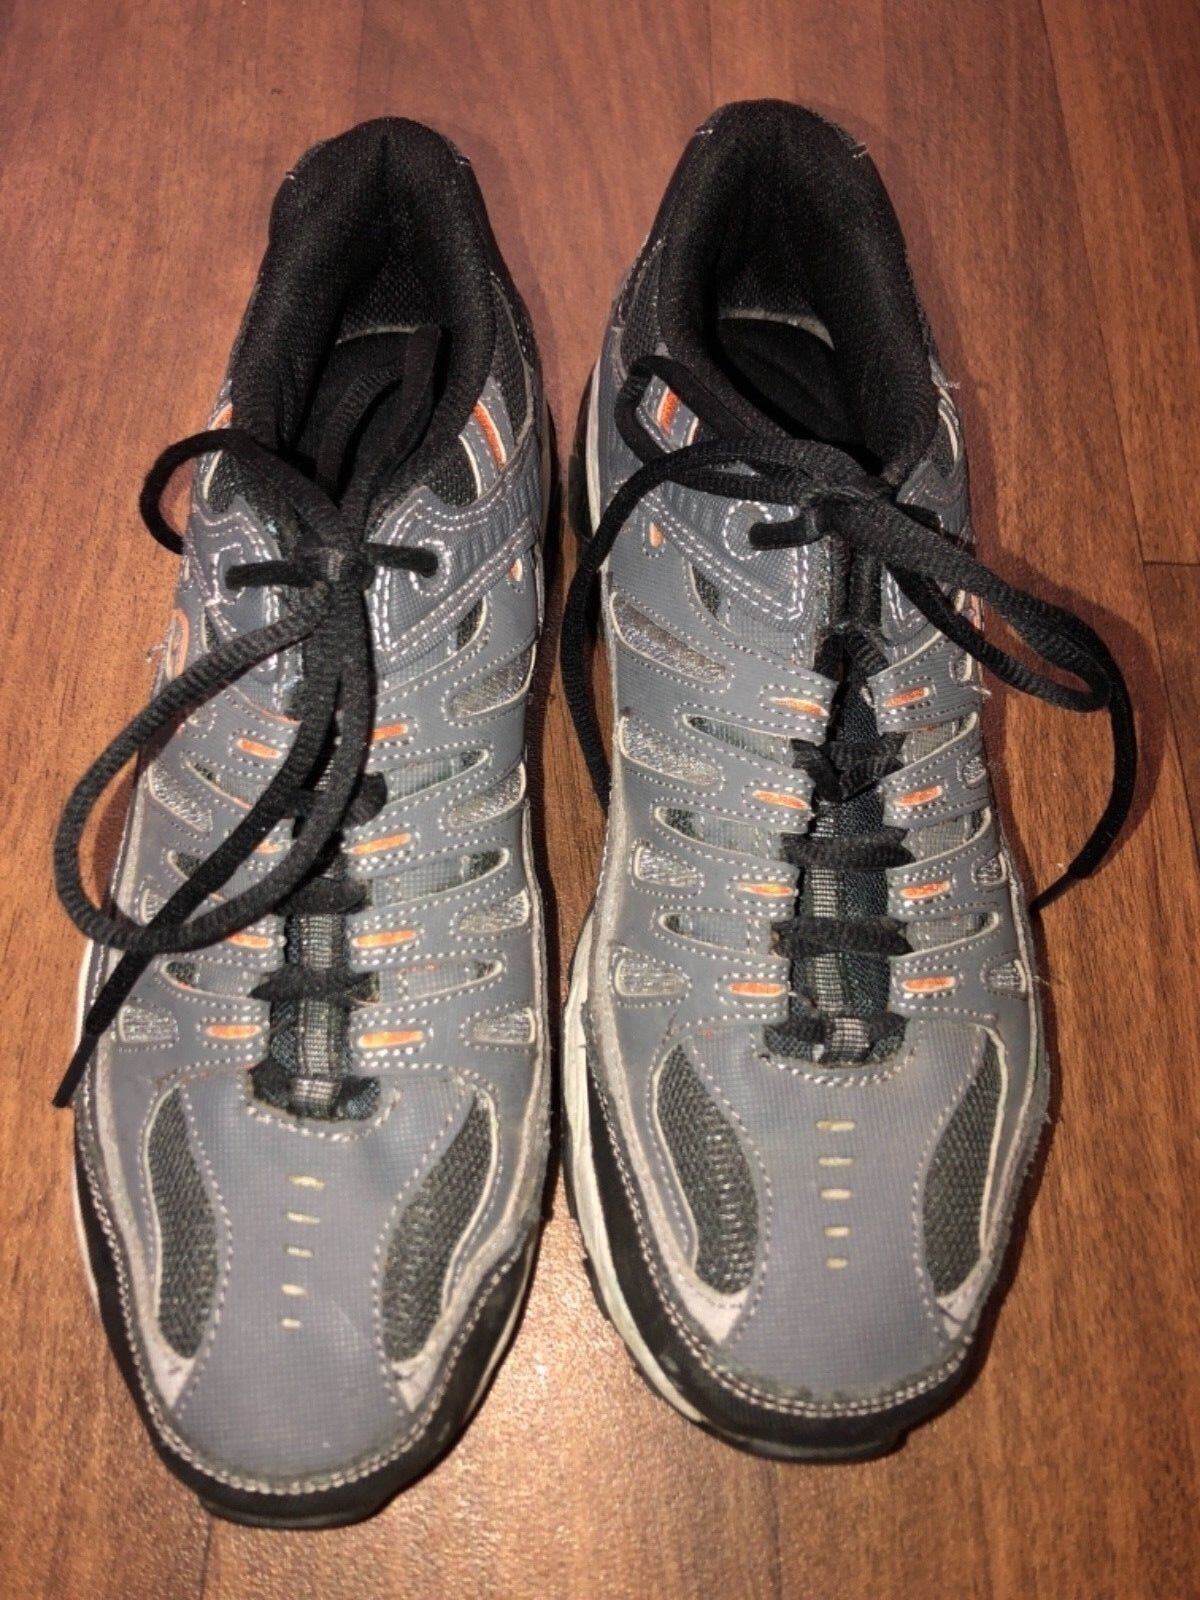 Skechers Sport Afterburn Charcoal Gray/Orange Mens Athletic Shoes SN 50125 Sz 10 Casual wild